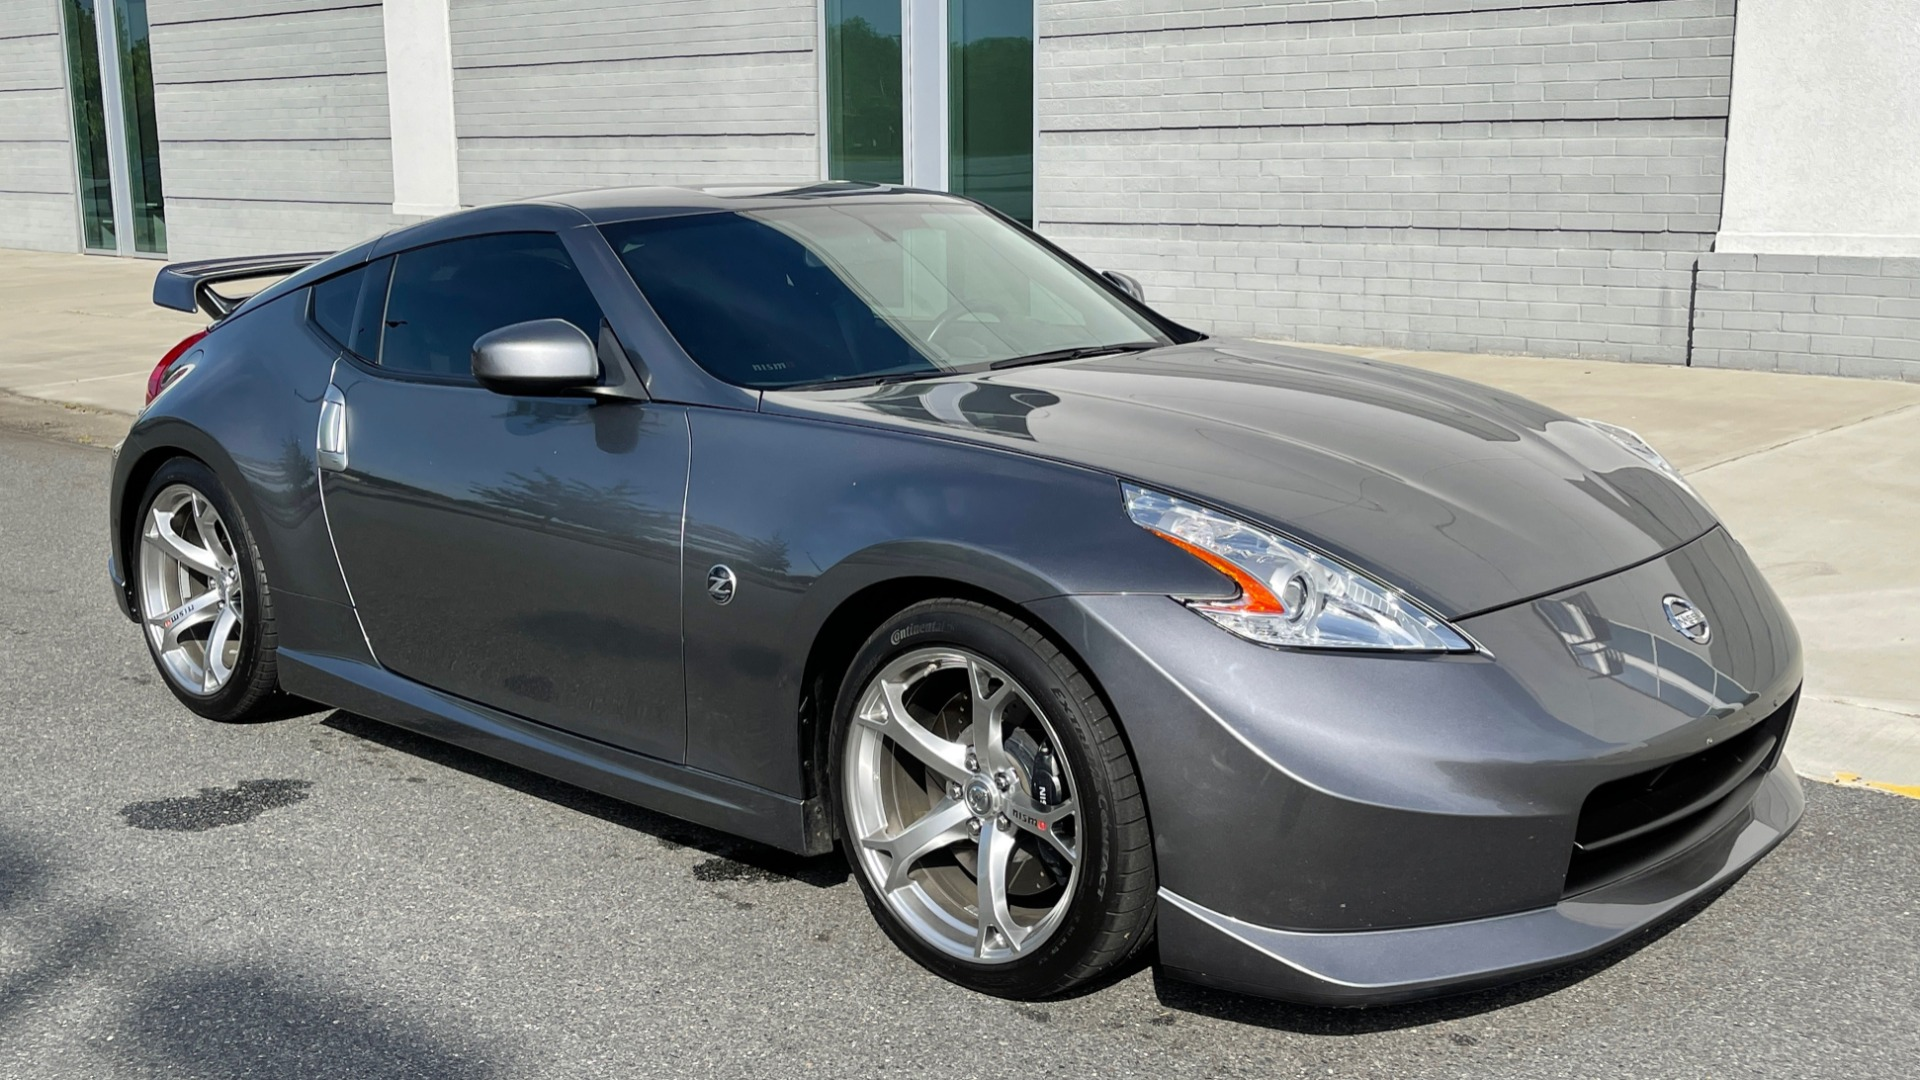 Used 2011 Nissan 370Z NISMO COUPE / 3.7L V6 / 6-SPD MAN / AUTO CLIMATE CONTROL for sale $32,995 at Formula Imports in Charlotte NC 28227 6